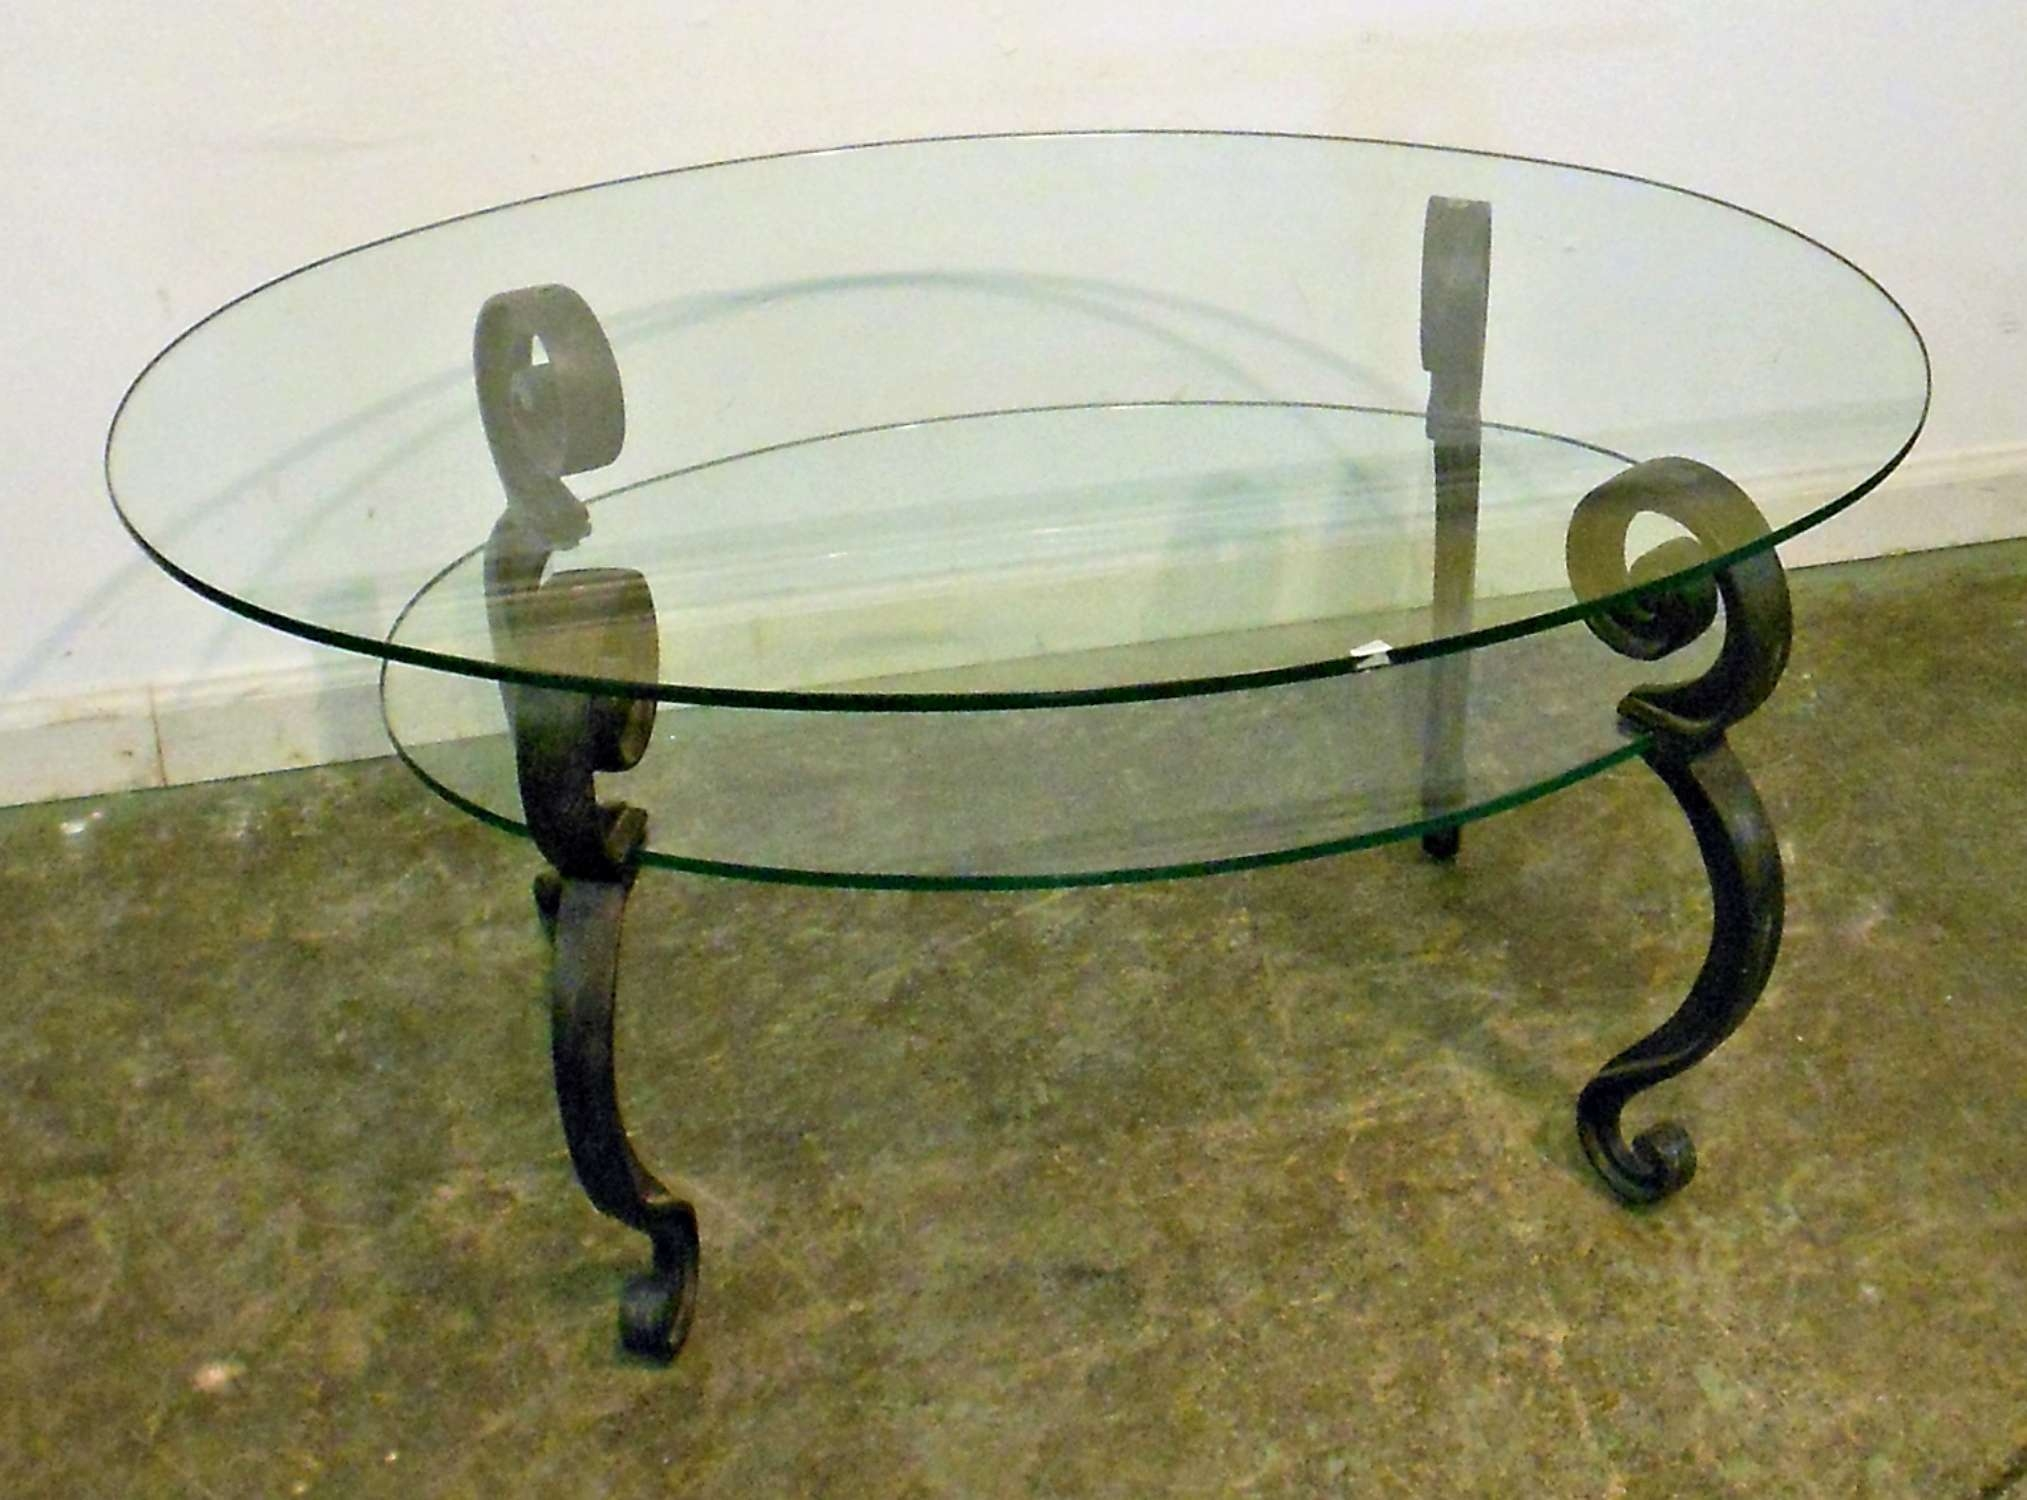 Vintage Glass Top Coffee Table With Black Metal Legs And Shelves Inside 2017 Vintage Glass Coffee Tables (View 15 of 20)